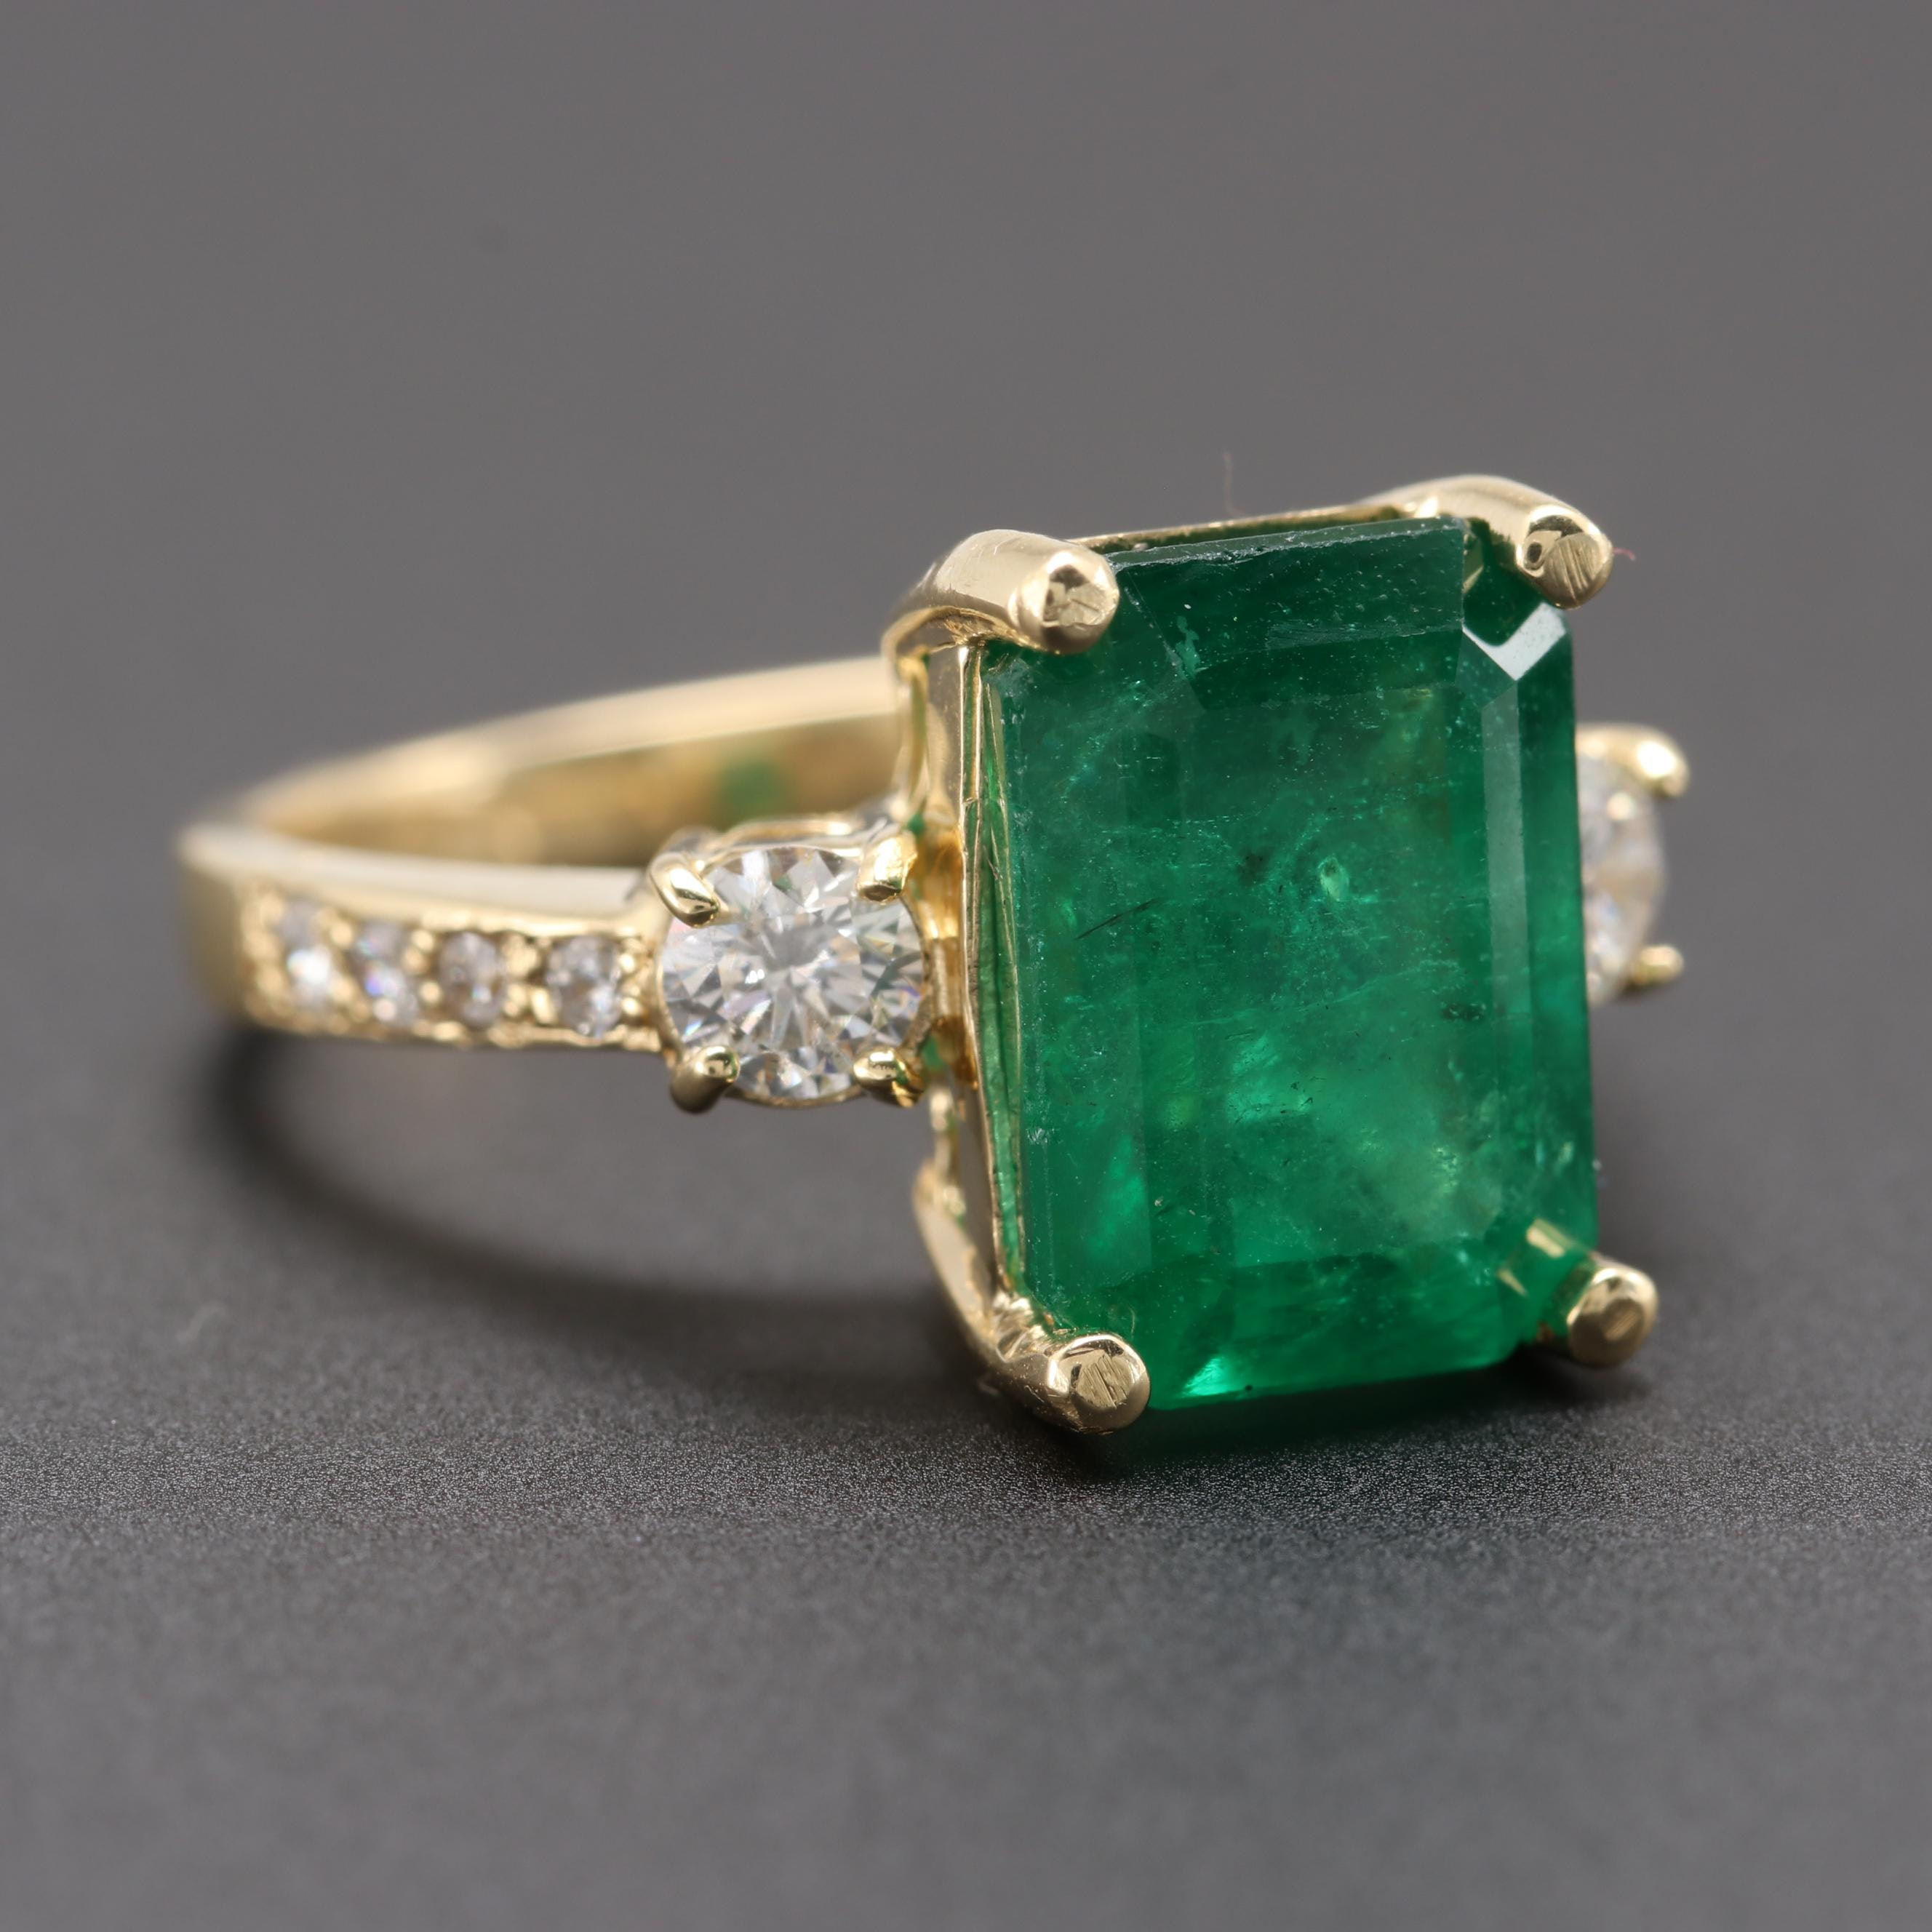 18K Yellow Gold 4.63 CT Emerald and Diamond Ring